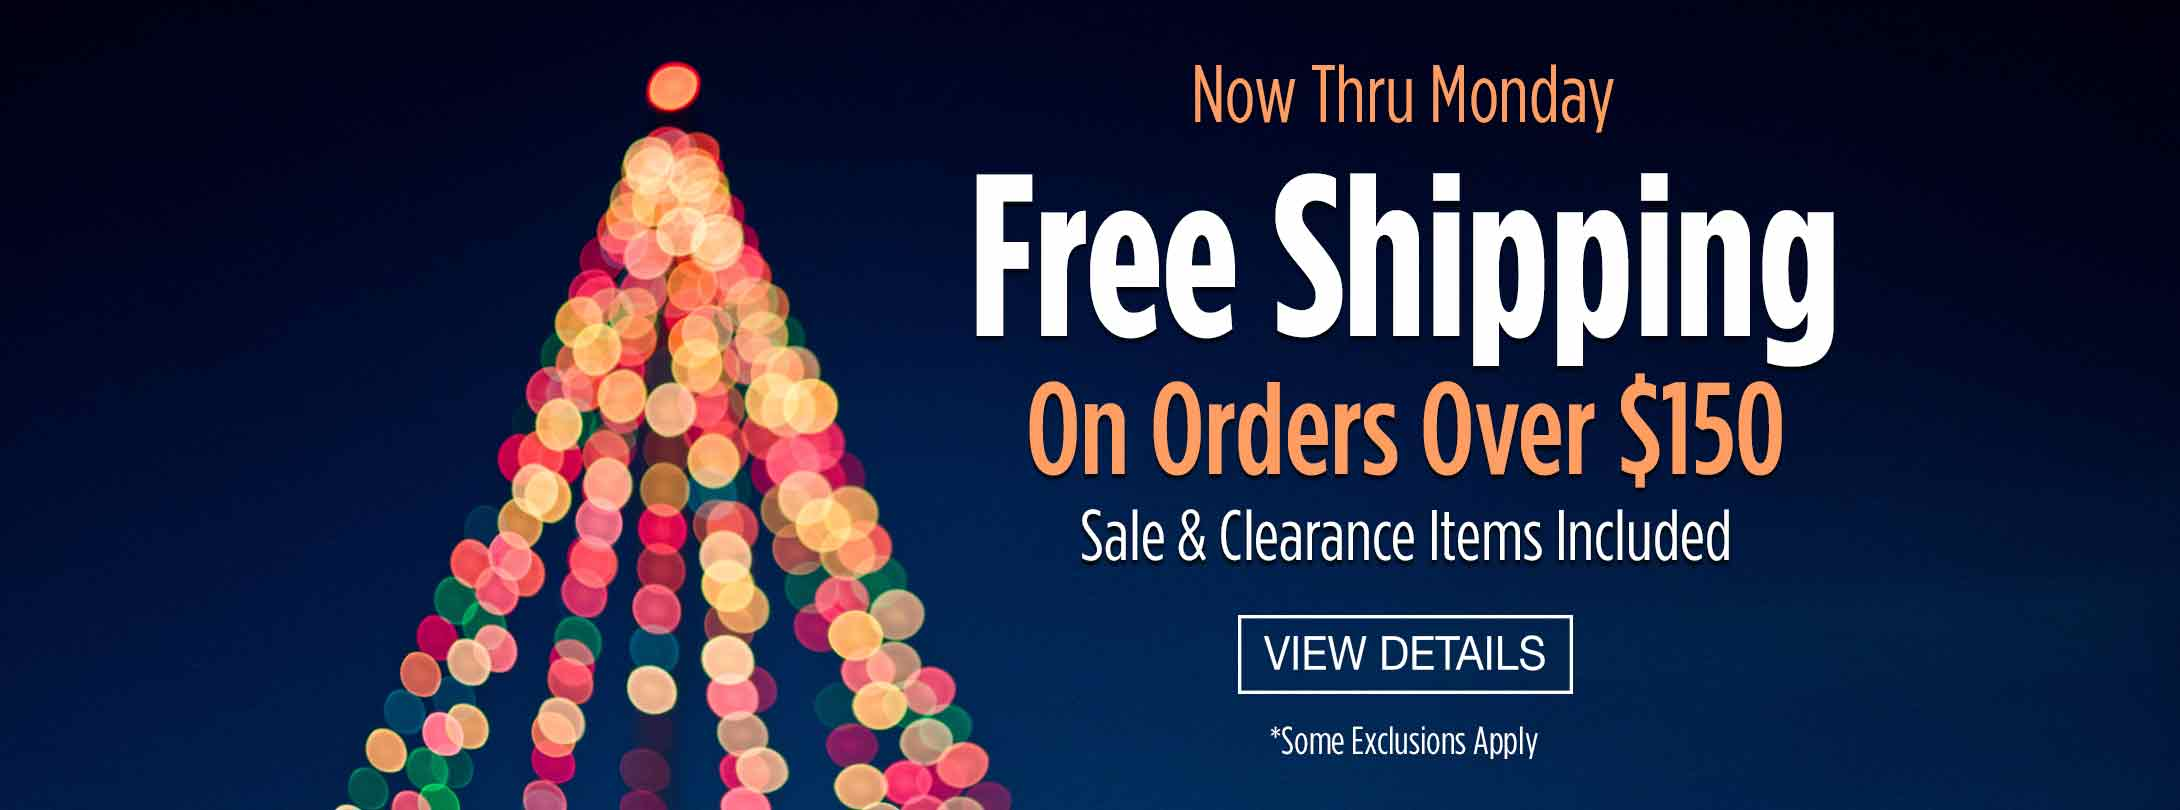 Free Shipping on Orders Over $150 - Sale & Clearance Items Included!